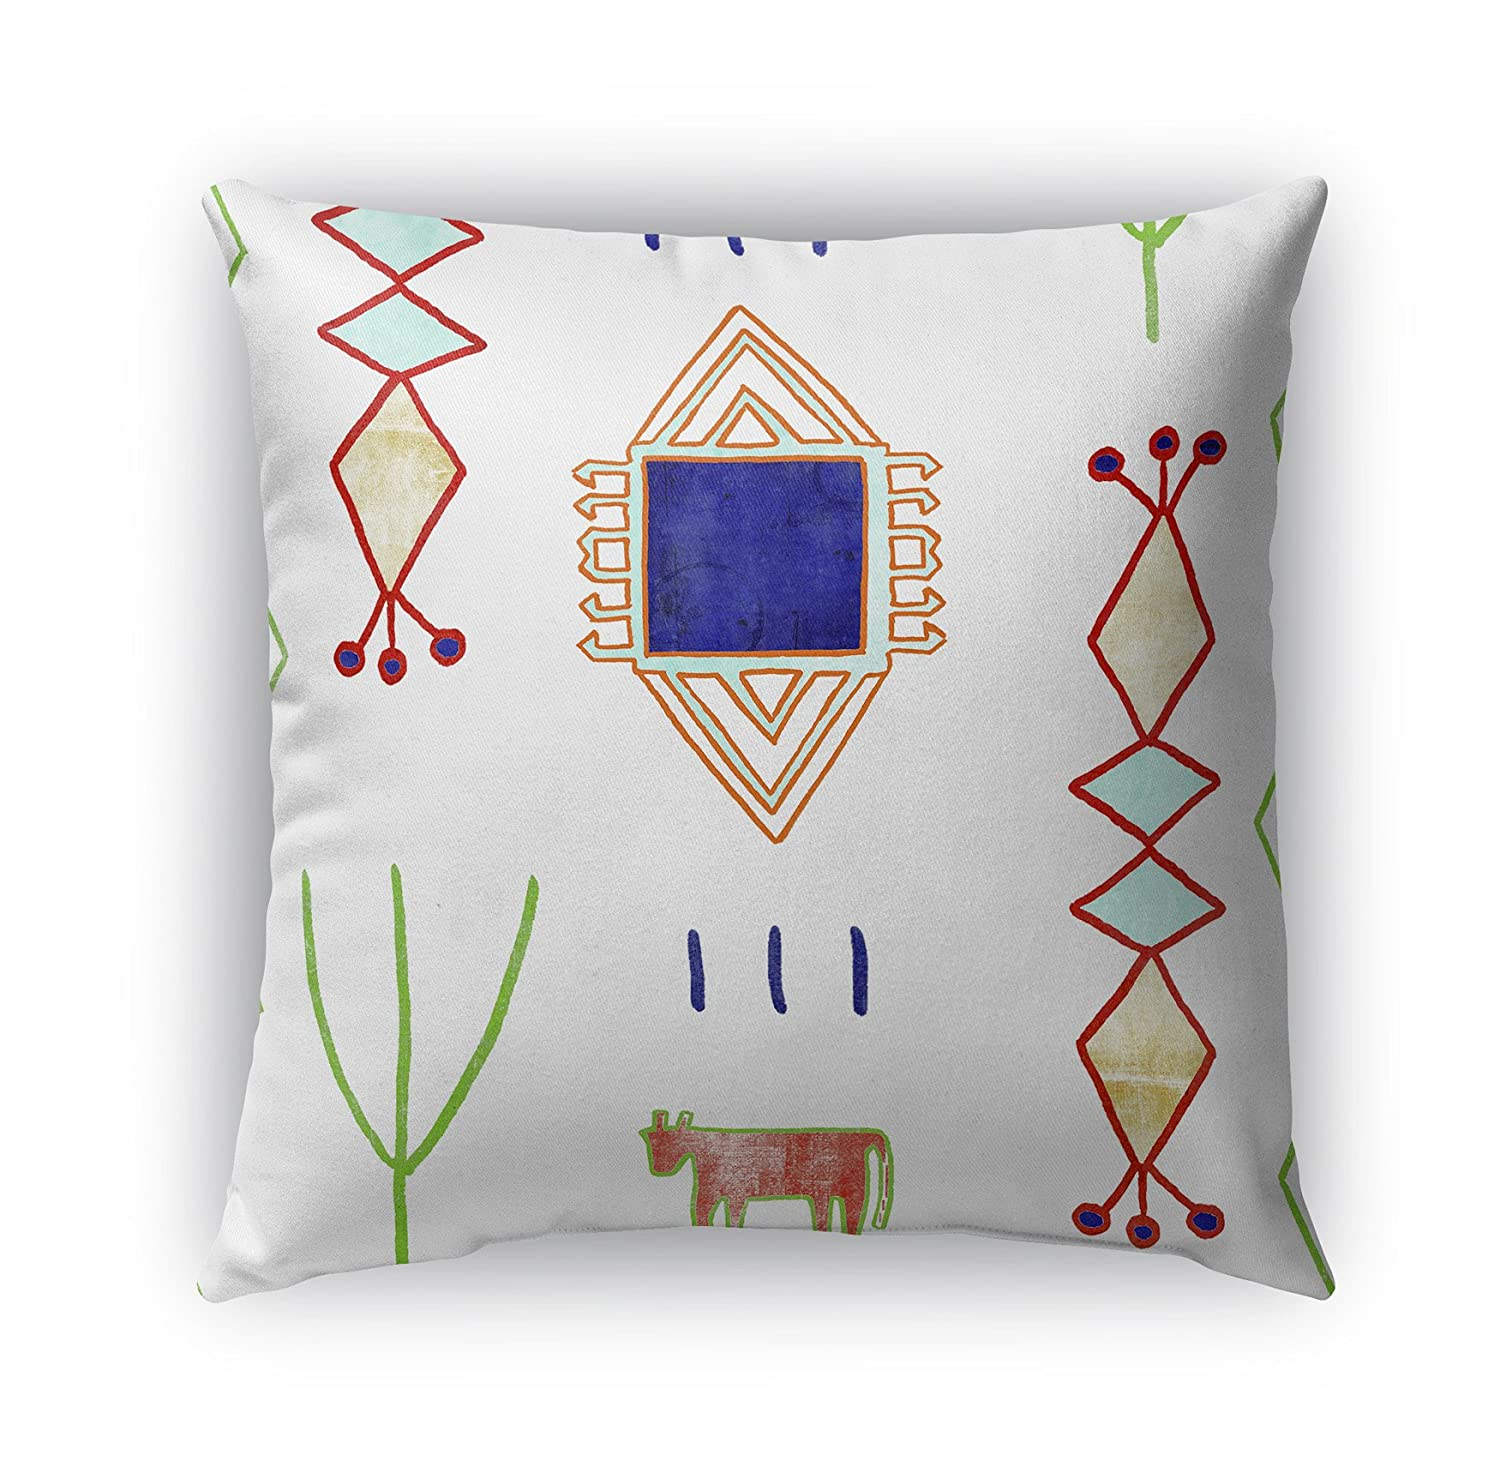 Teal//Purple//Gold//Green Size: 26X26X6 - - Navajo Collection KAVKA Designs Chrarda Indoor-Outdoor Pillow, TELAVC8088OD26